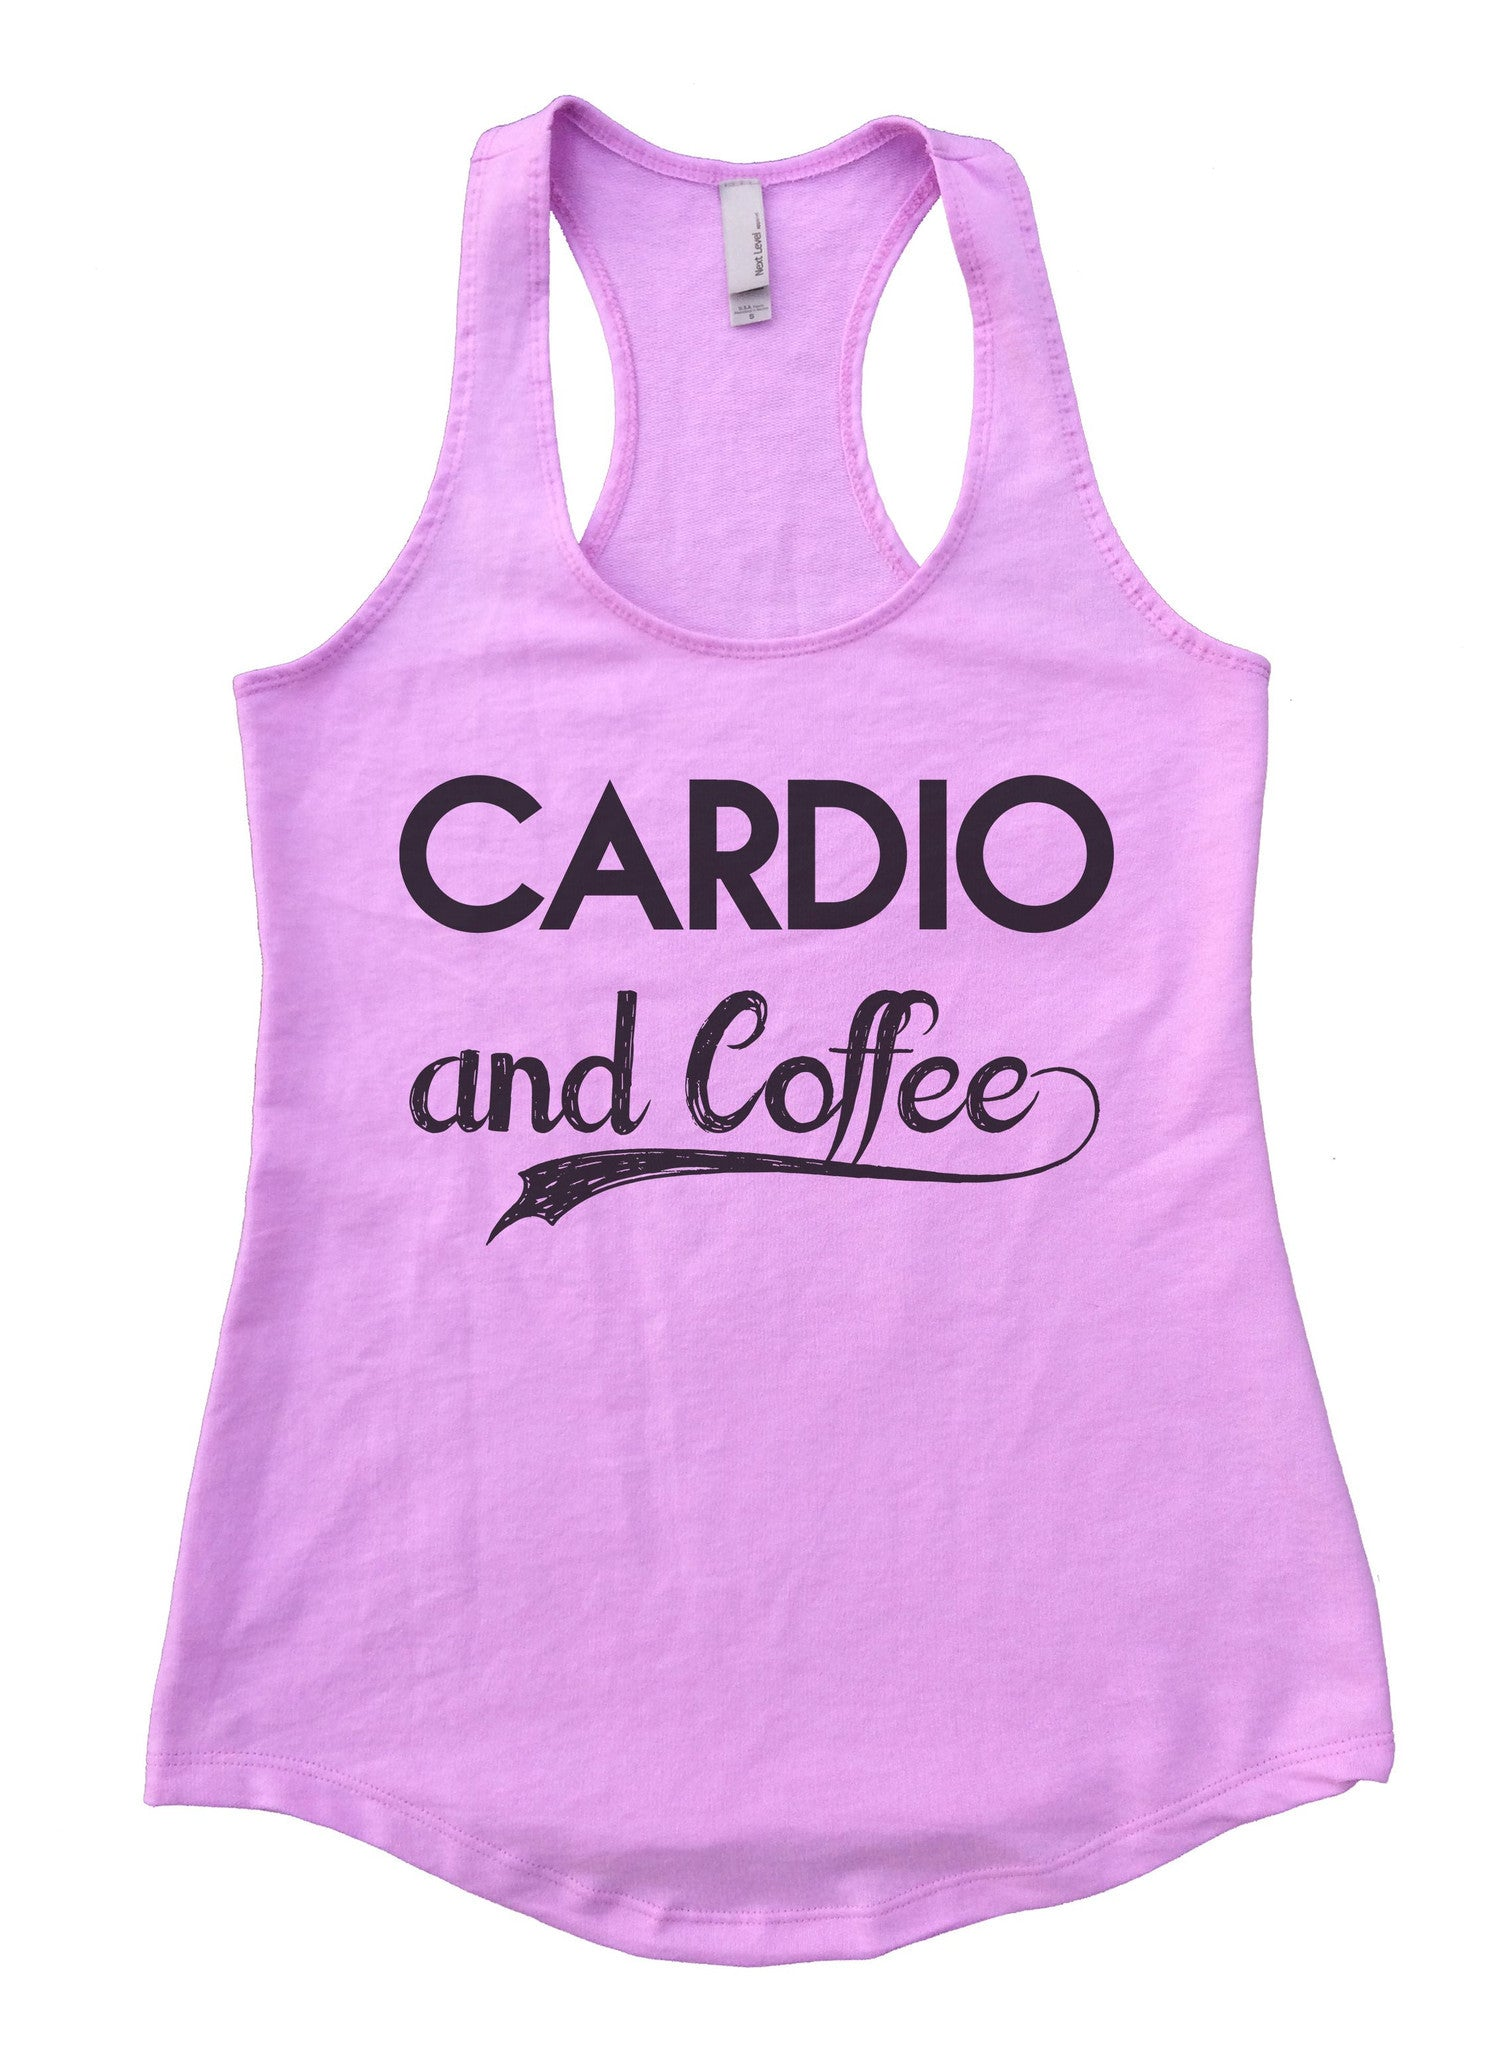 Cardio And Coffee Womens Workout Tank Top F797 - Funny Shirts Tank Tops Burnouts and Triblends  - 4